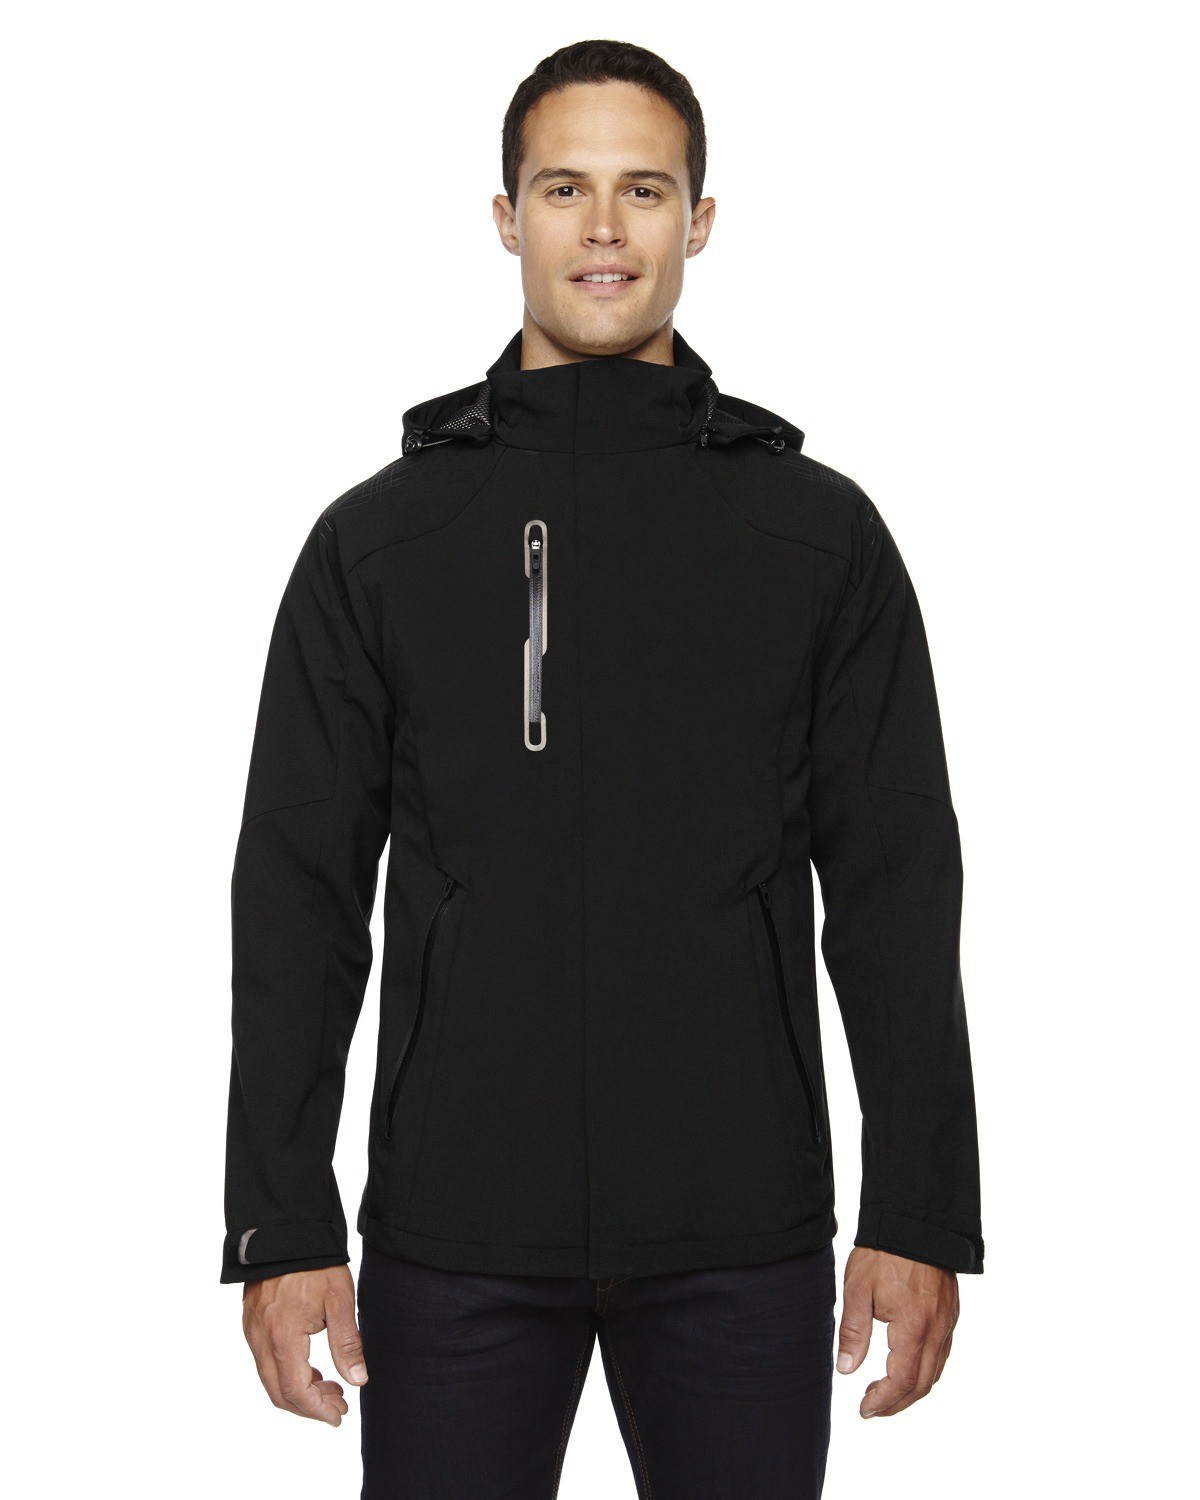 Men's Axis Soft Shell Jacket with Print Graphic Accents